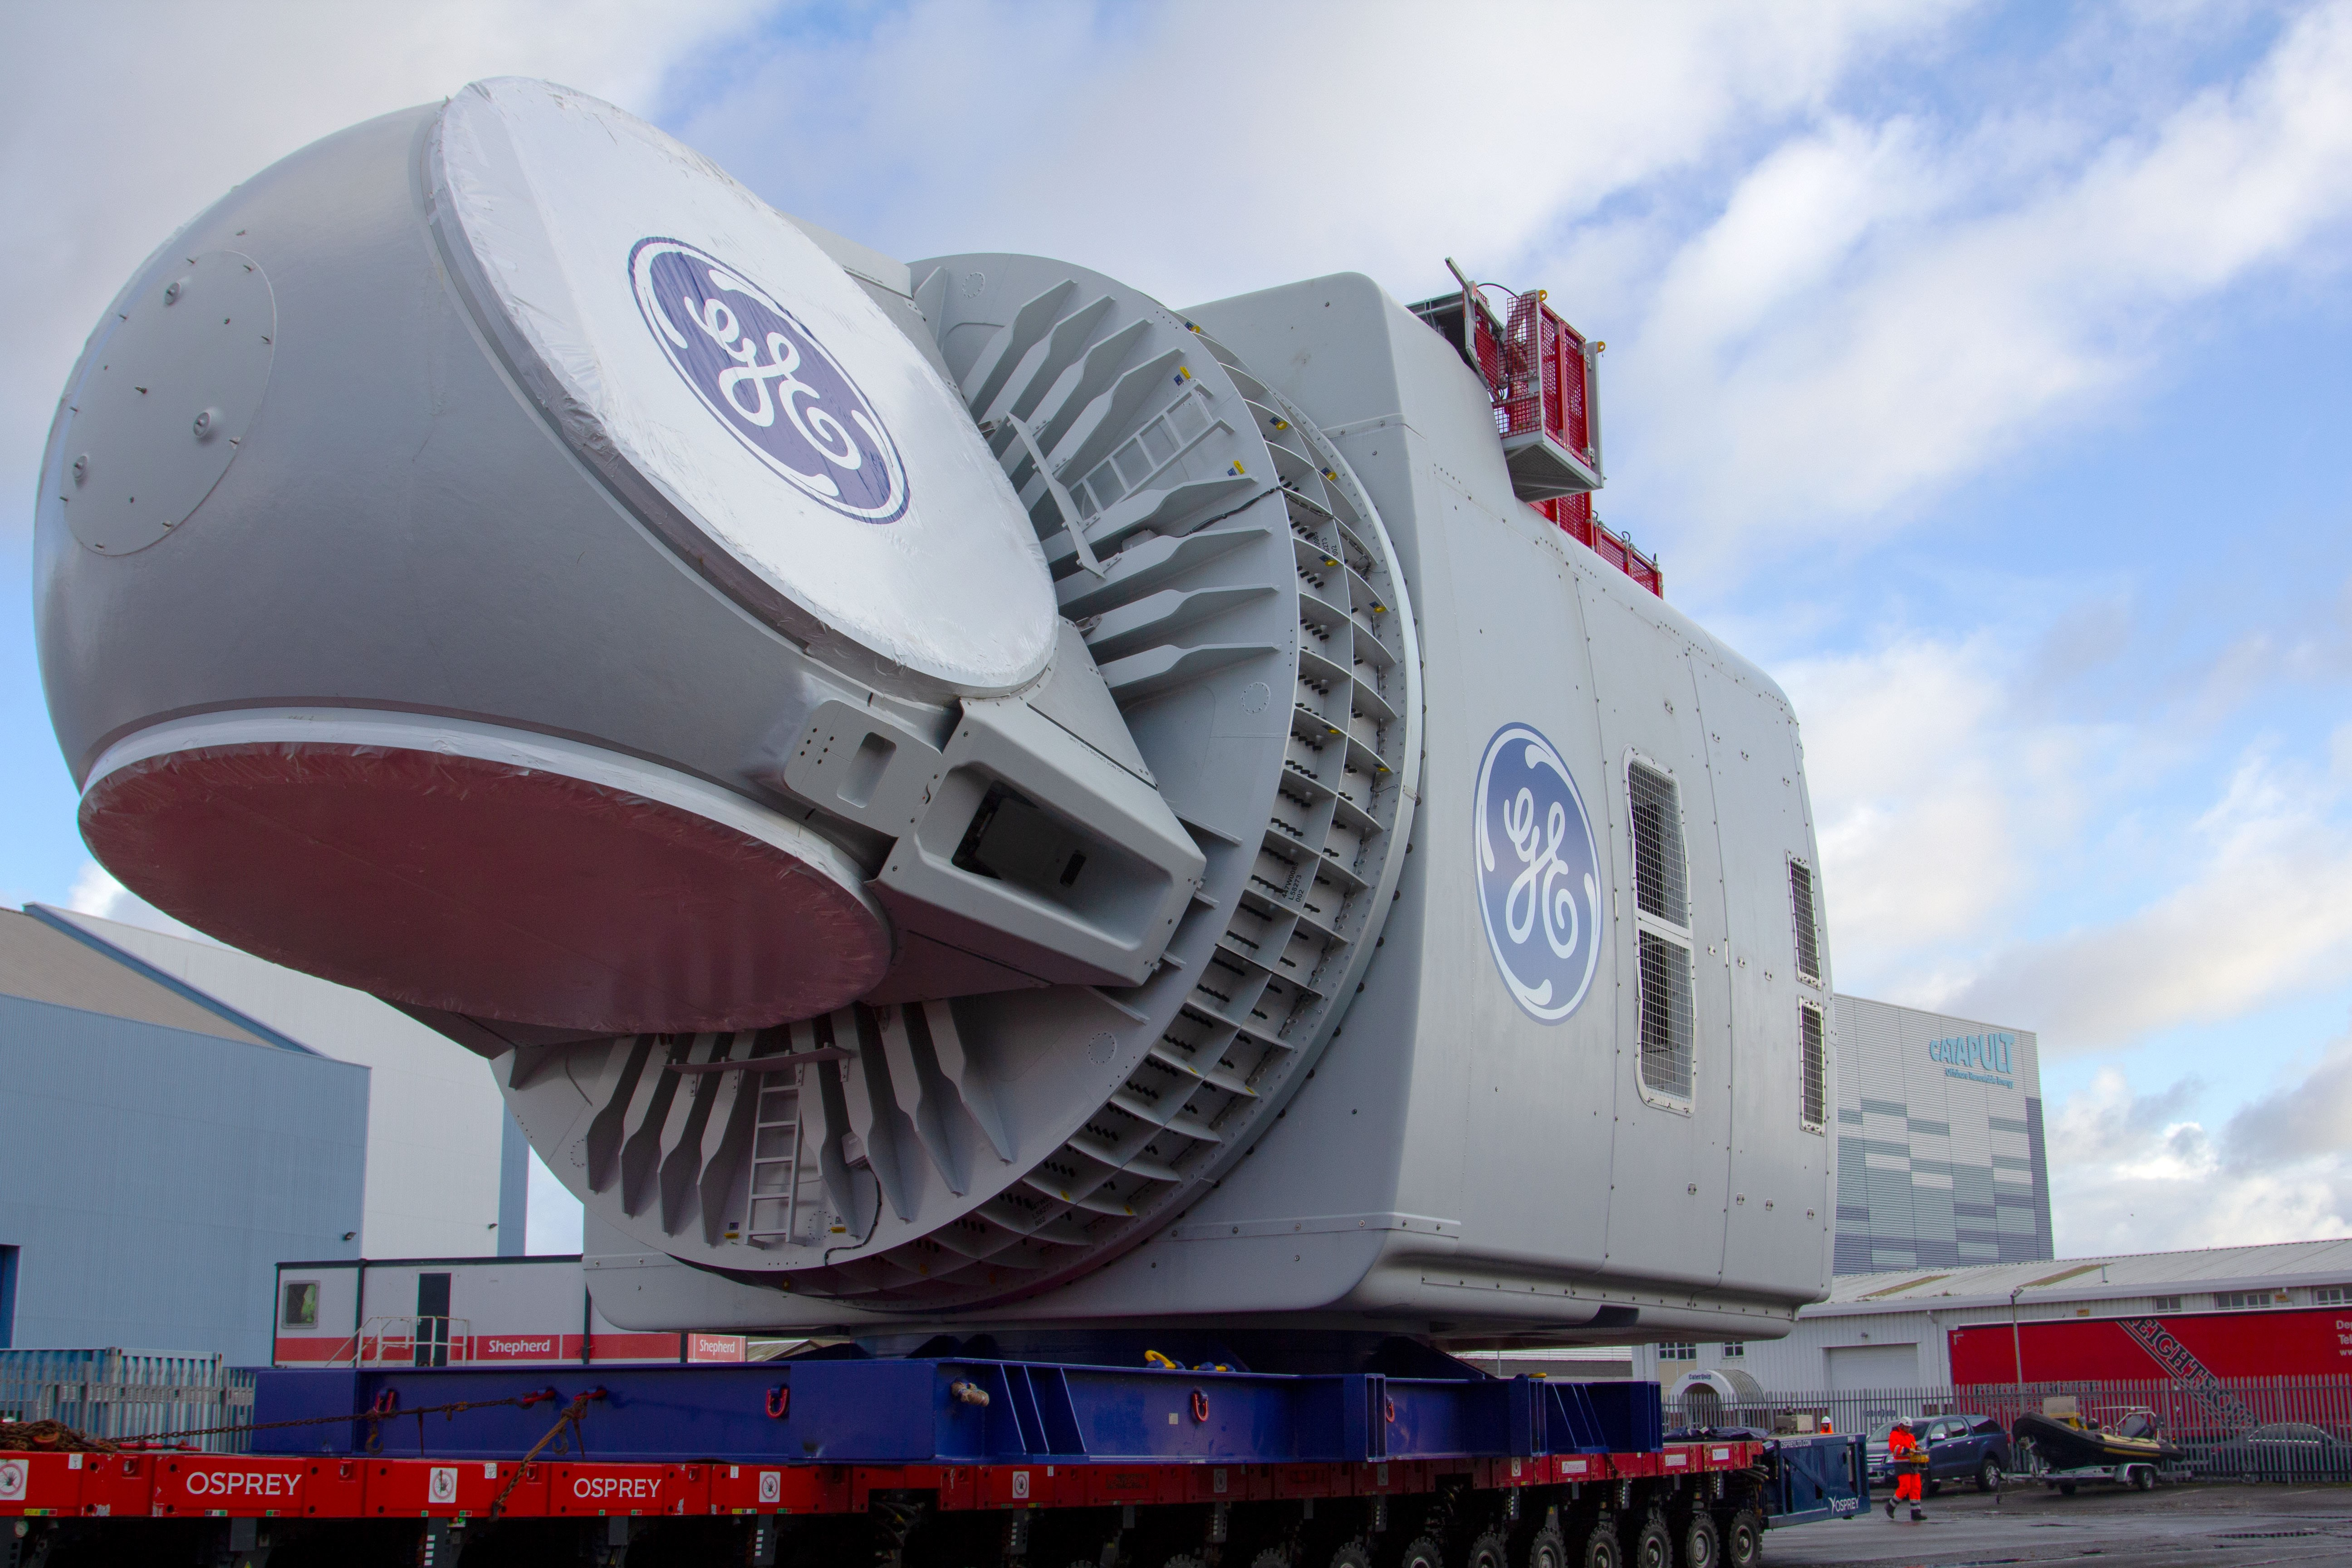 GE Renewable Energy turbine nacelle.